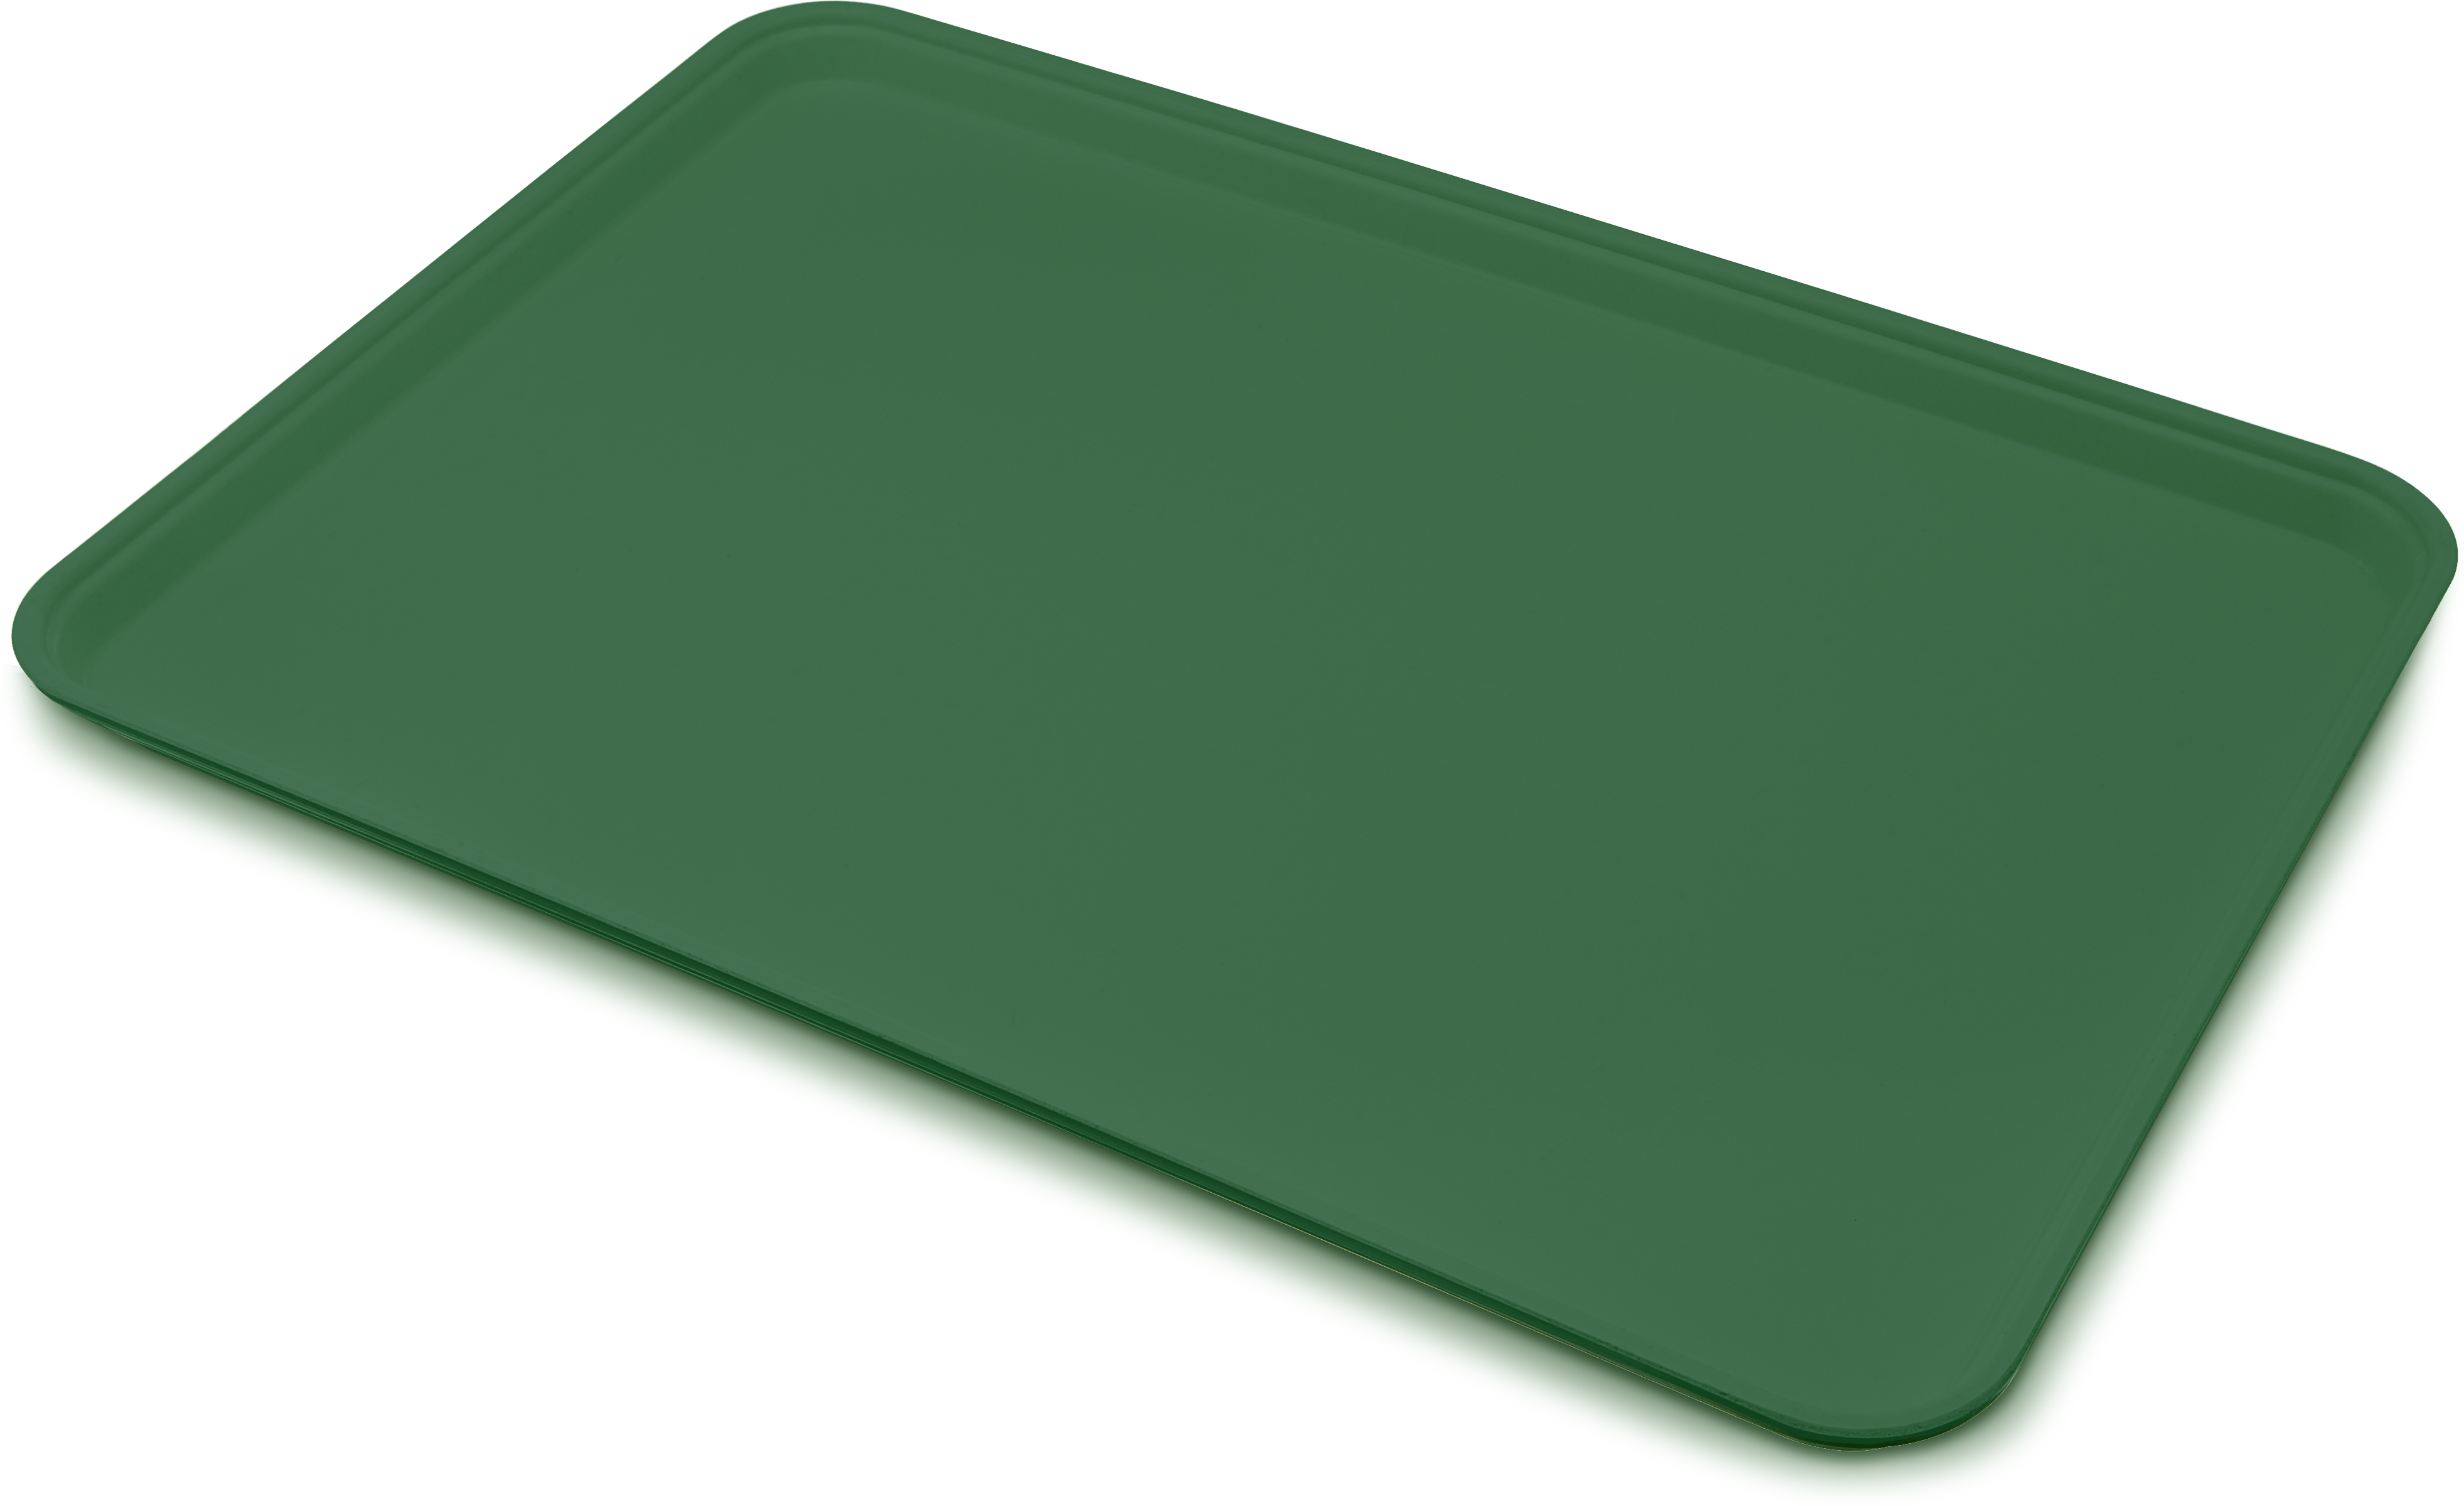 Glasteel Tray Display/Bakery 17.9 x 25.6 - Forest Green